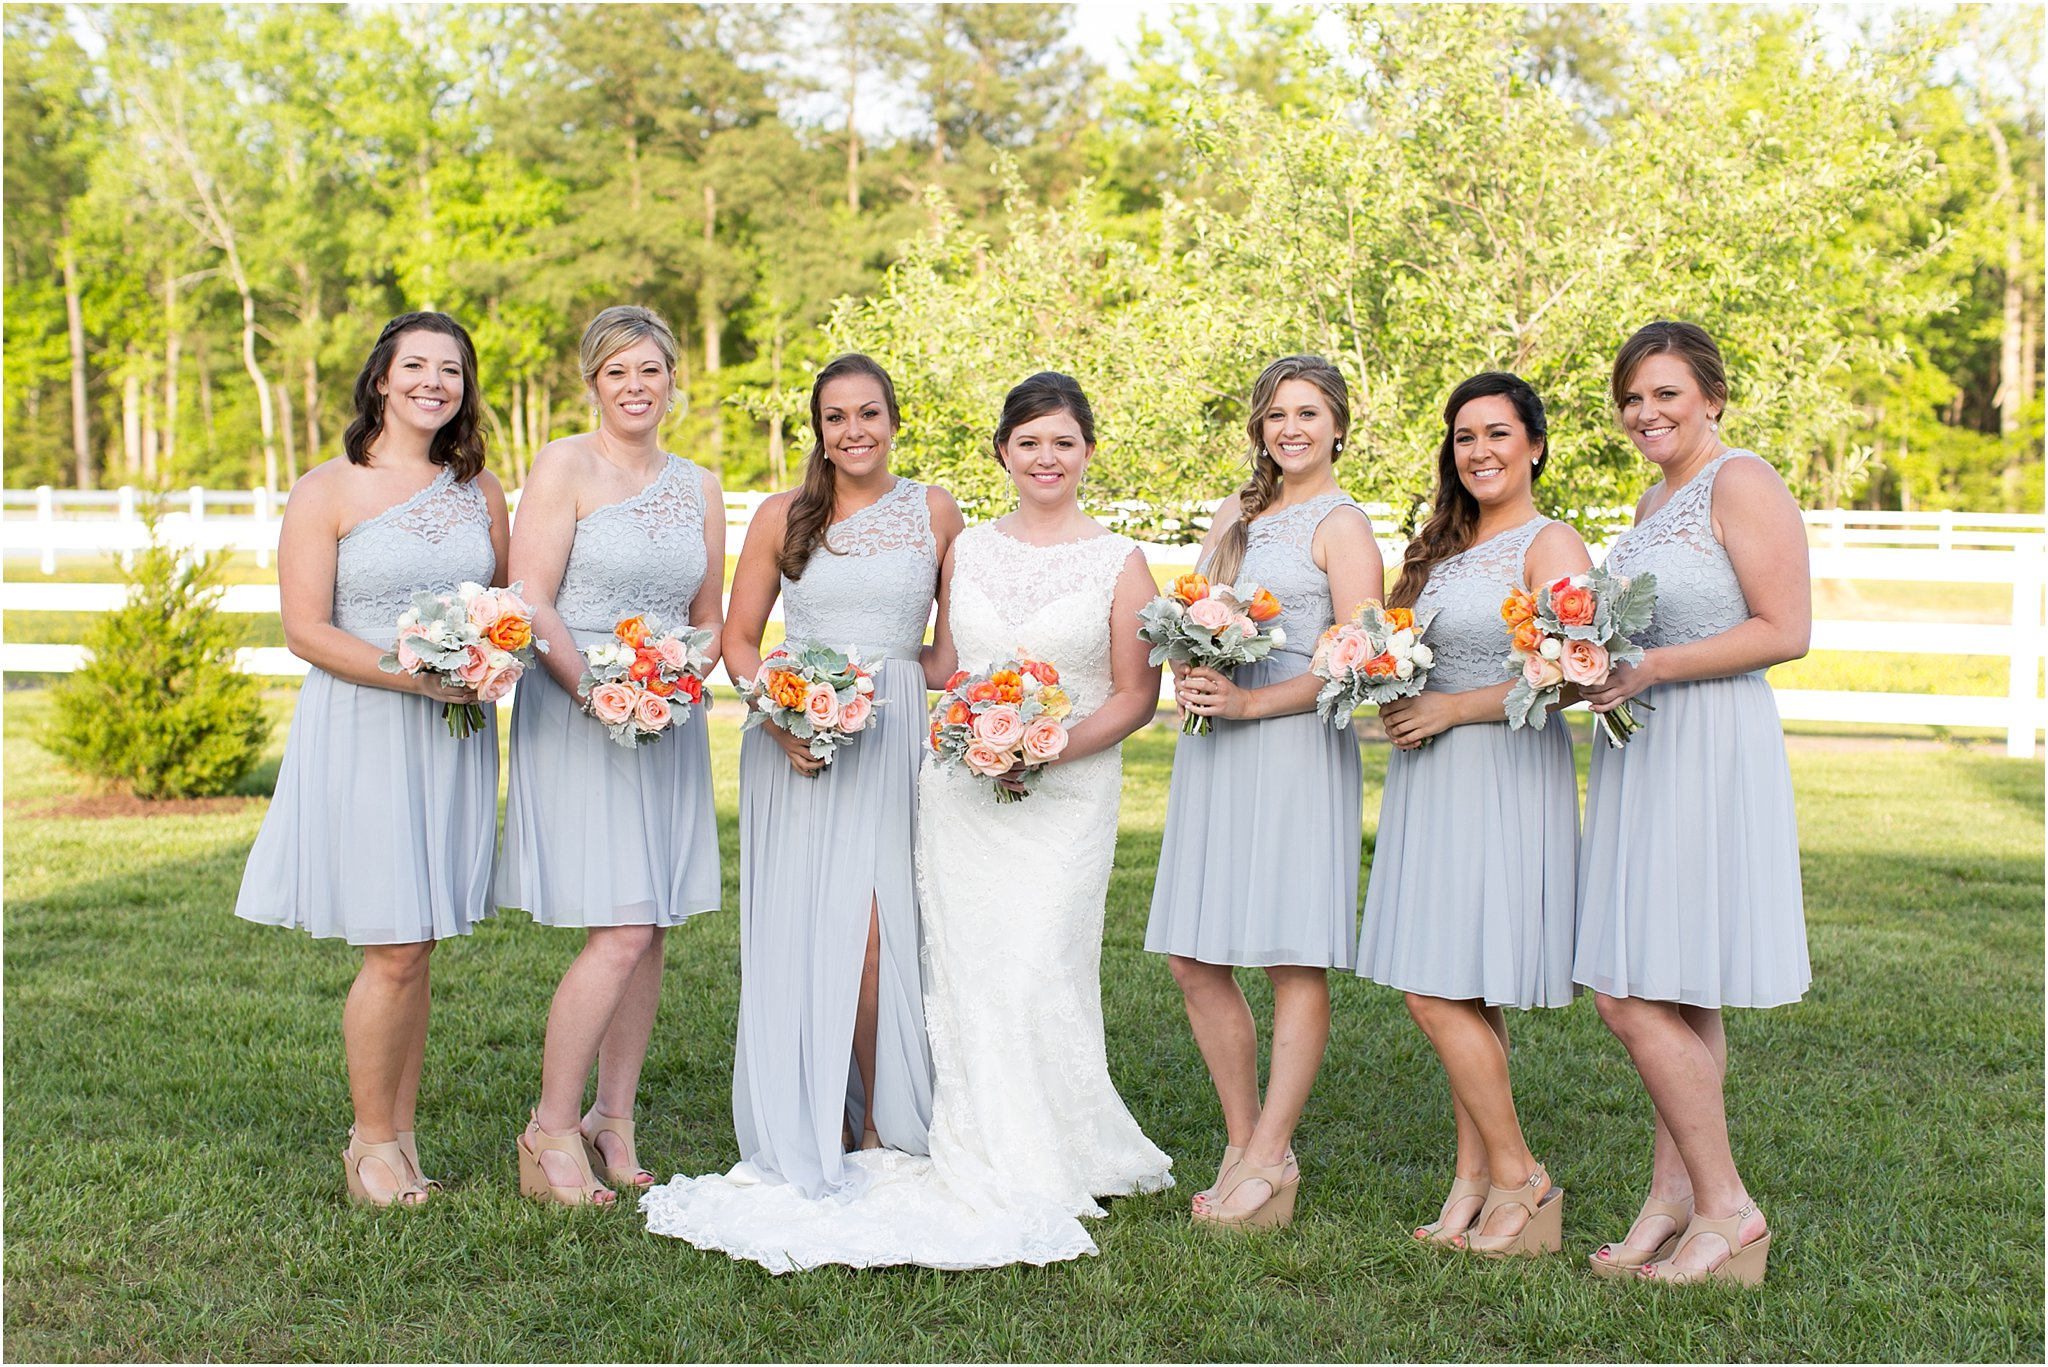 jessica_ryan_photography_holly_ridge_manor_wedding_roost_flowers_jamie_leigh_events_dhalia_edwards_candid_vibrant_wedding_colors_1310